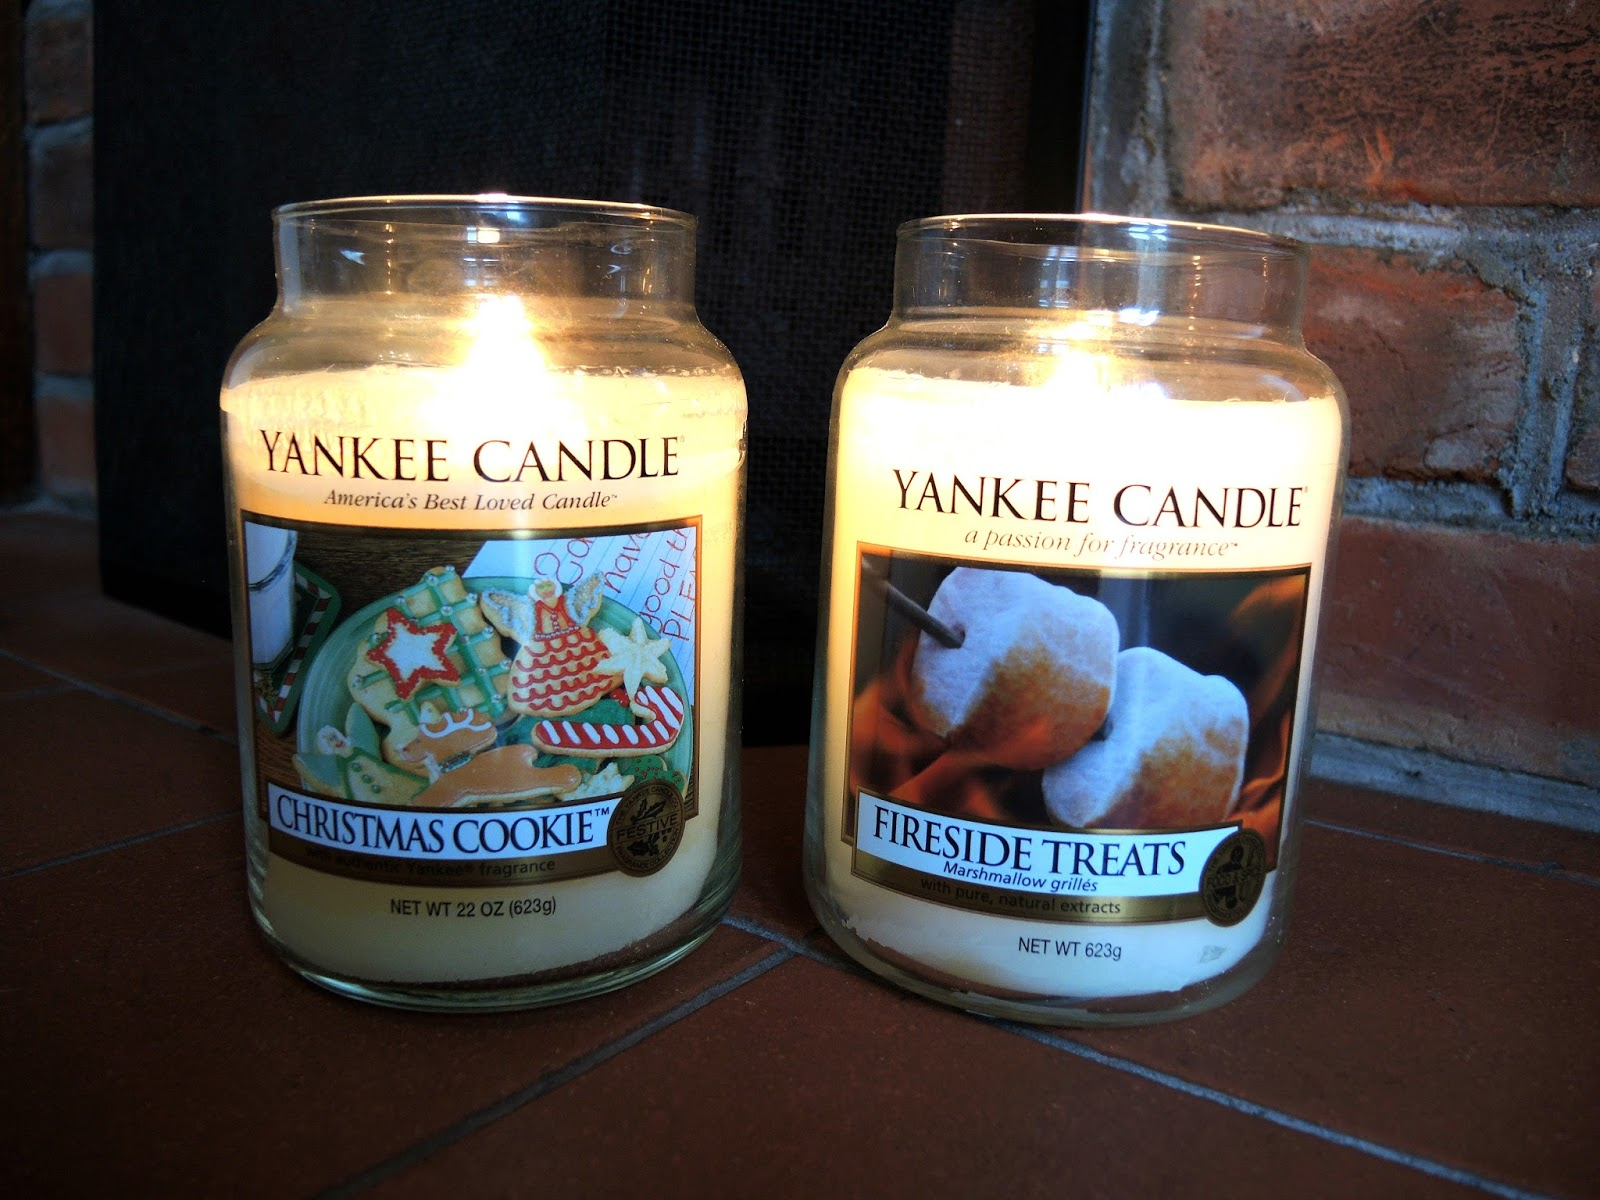 Yankee Candle Christmas Cookie and Fireside Treats